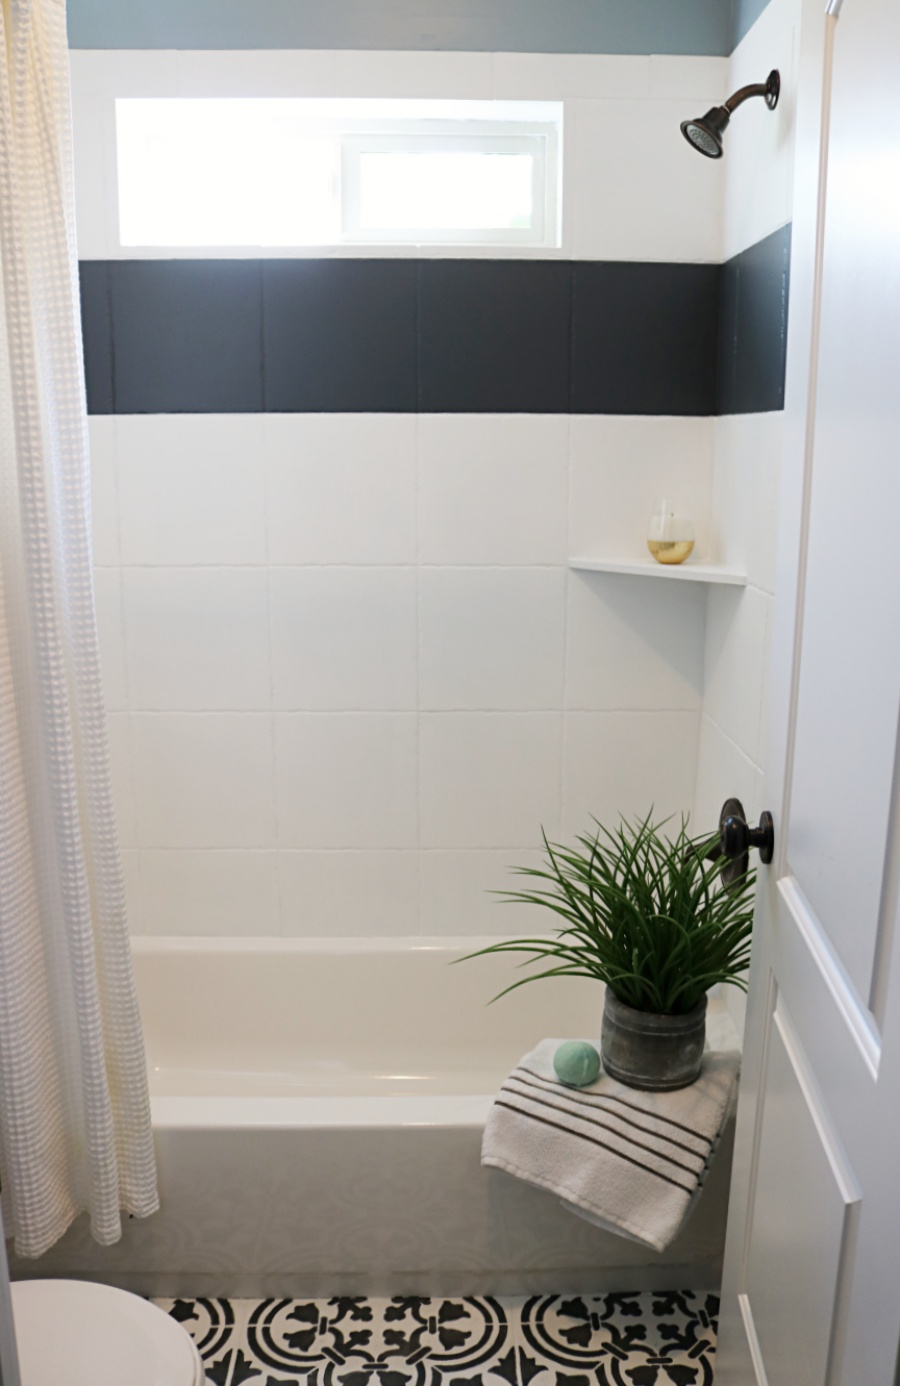 How to Paint Shower Tile - Remington Avenue